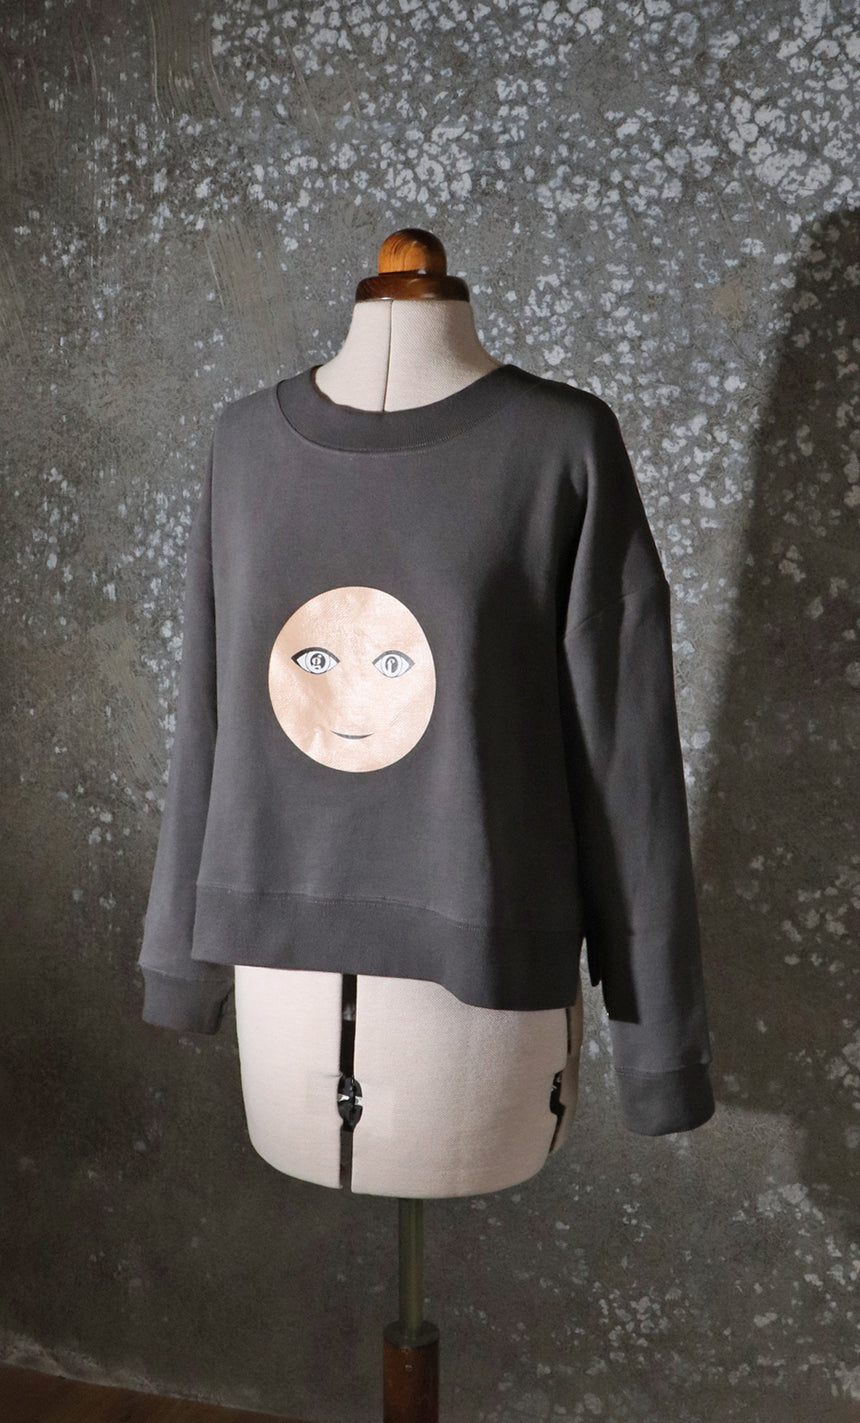 Greatfool Face Sweater